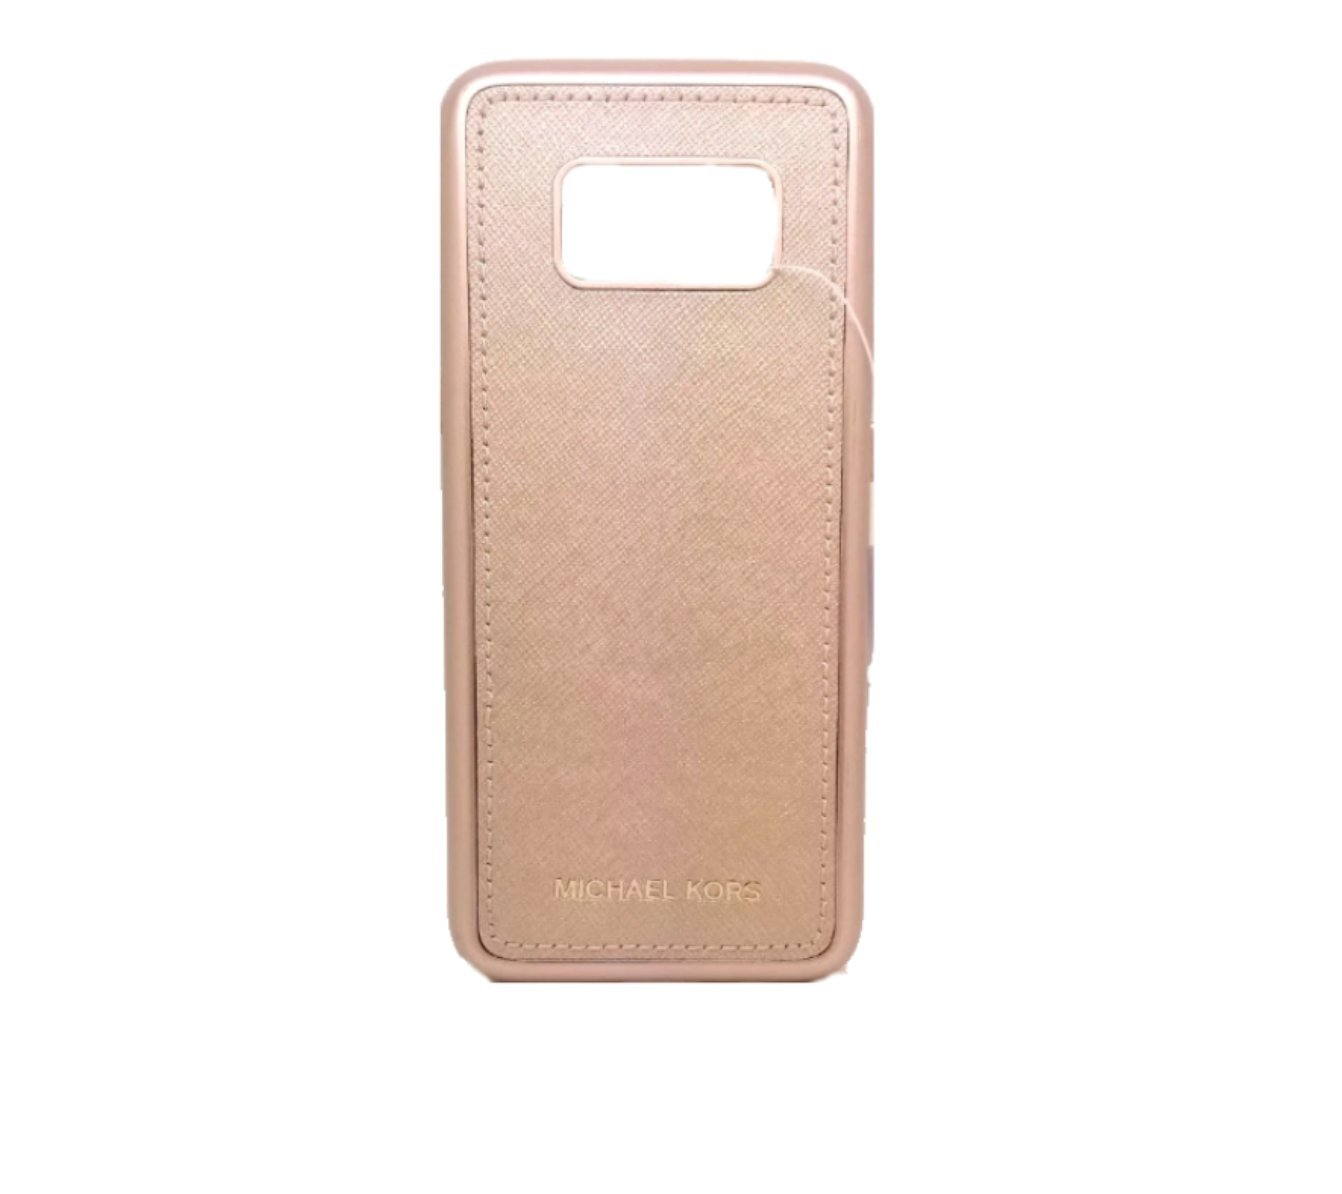 486766c6c0df Amazon.com: Michael Kors Leather Samsung S8 Snap-On Case, Rose Gold: Cell  Phones & Accessories